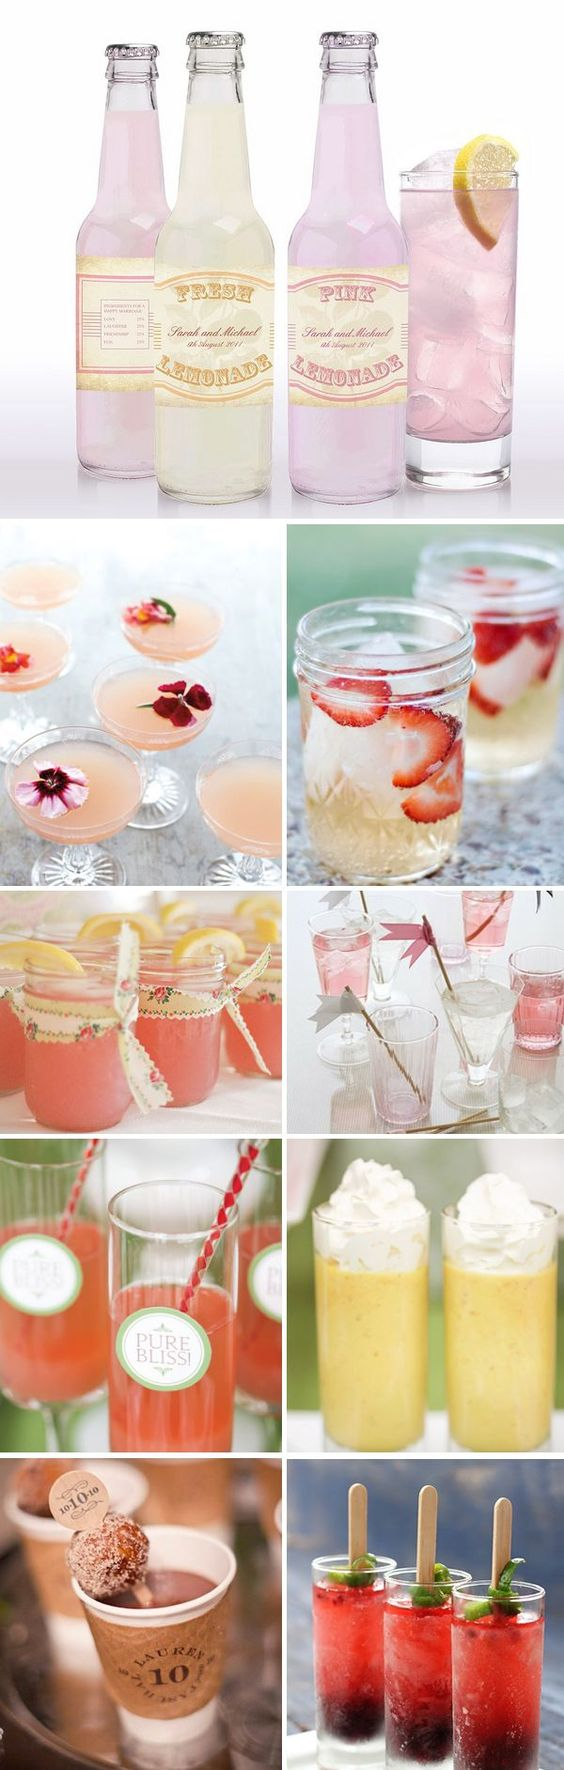 Drinks Reception Food And Wedding Reception Food On Pinterest